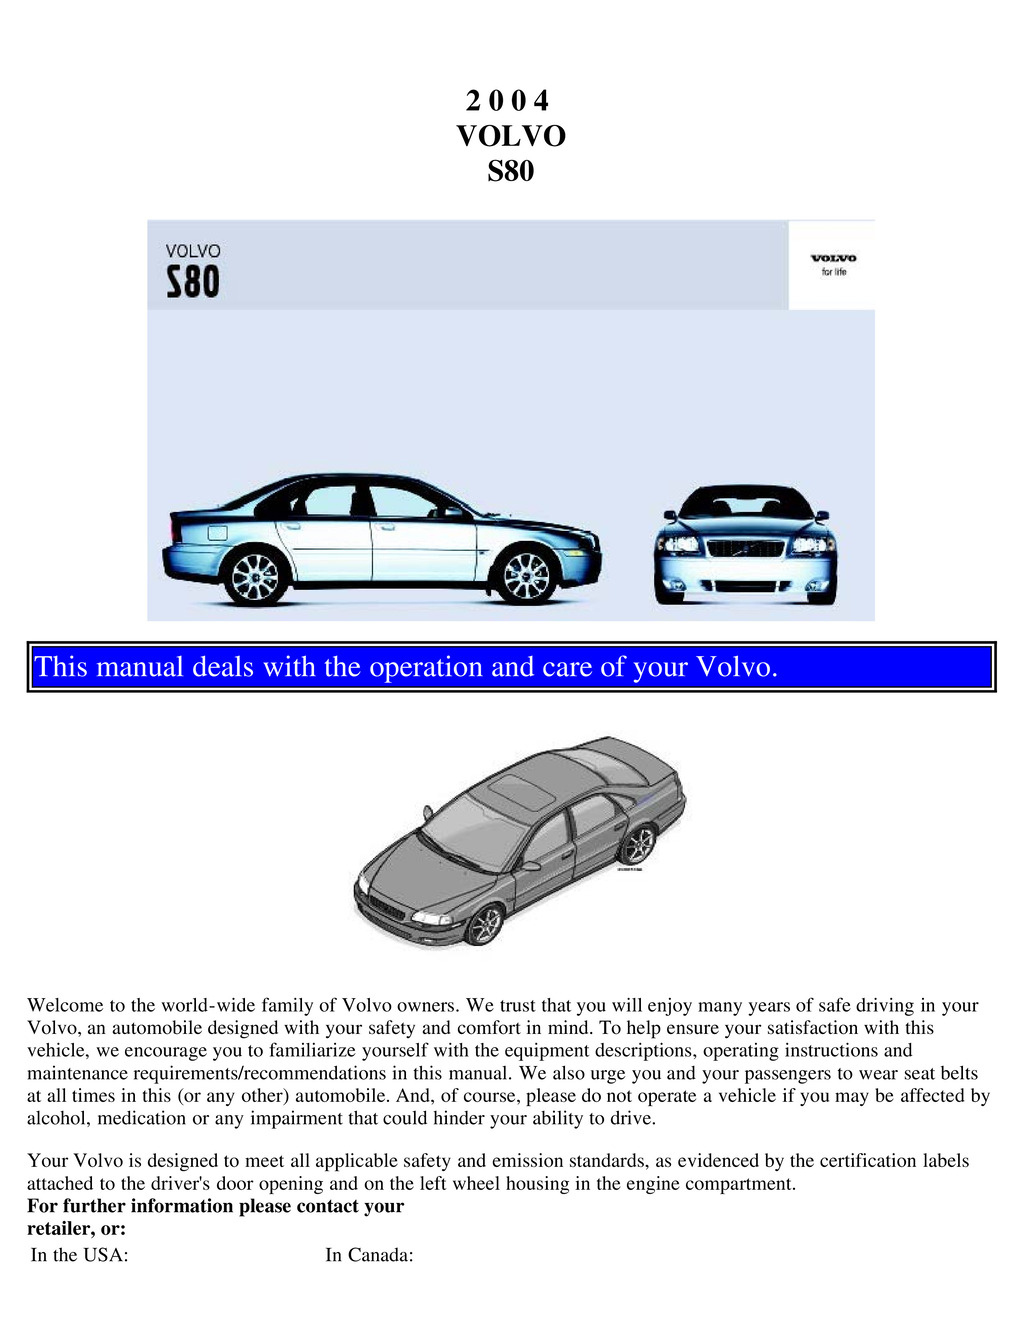 2004 Volvo S80 owners manual